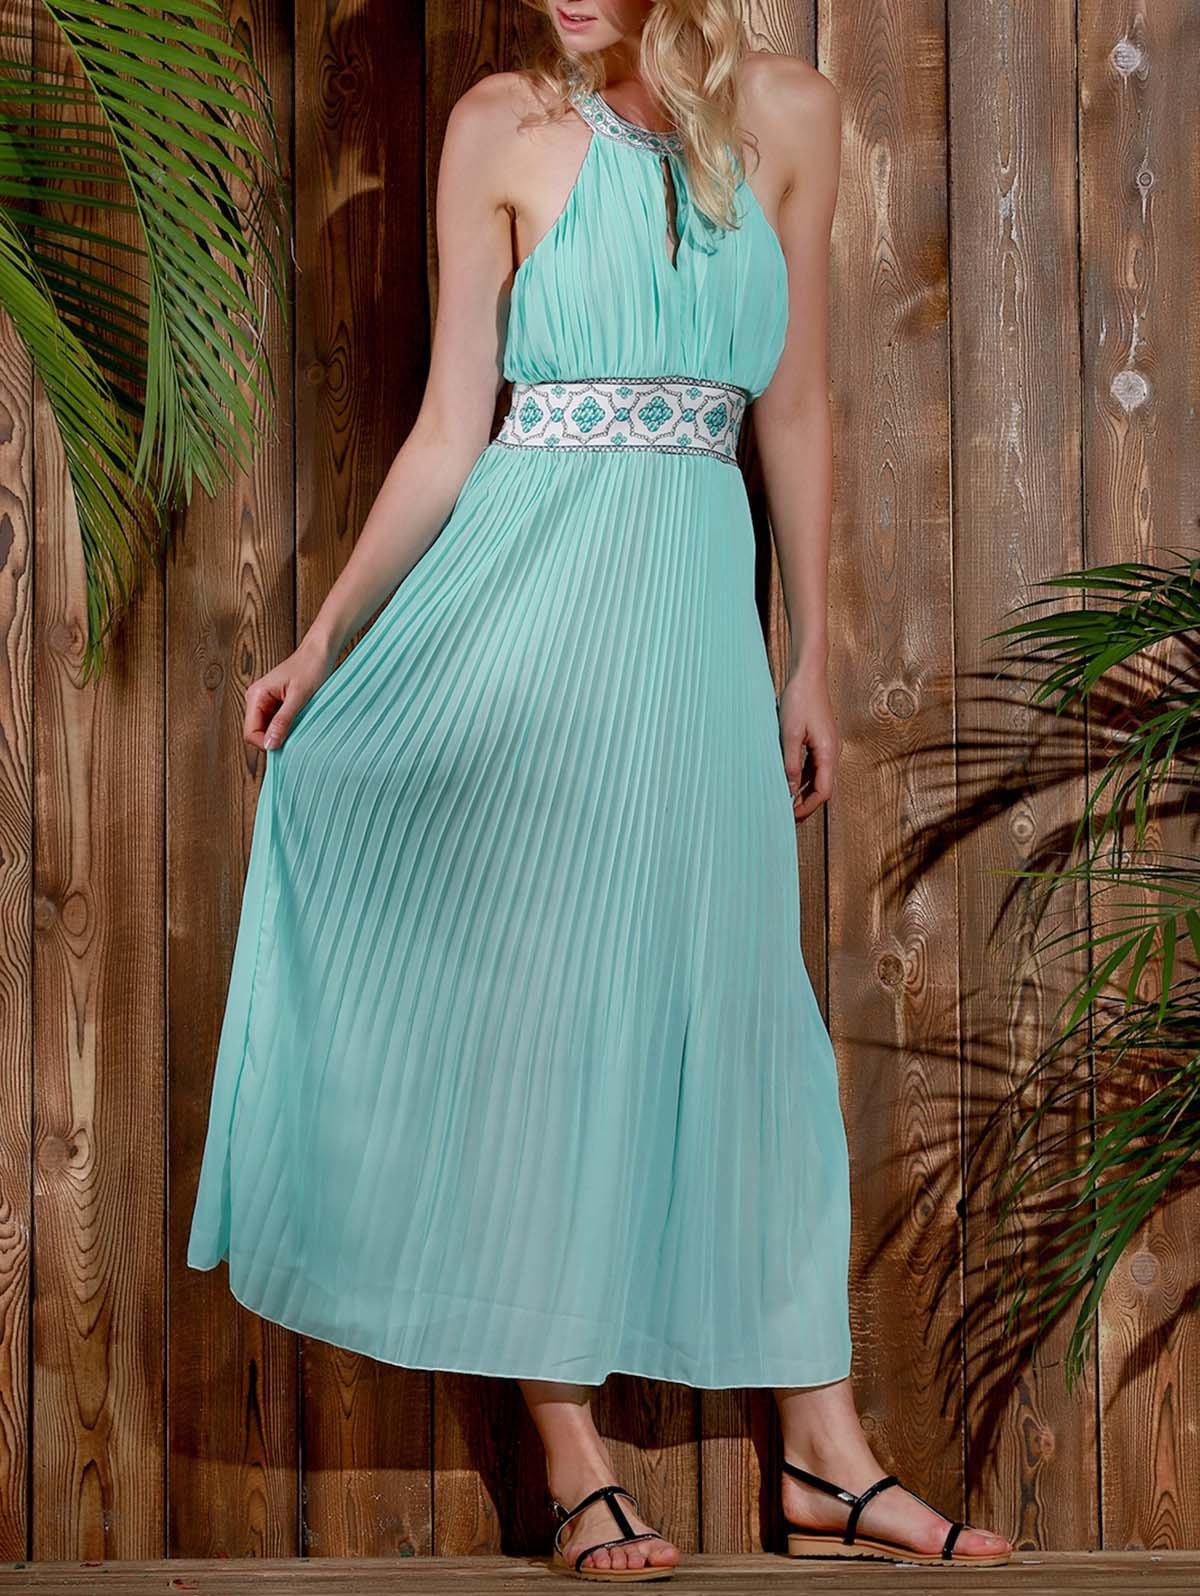 Elegant Halter Print Spliced Backless Hollow Out Women's Sage Maxi Dress - LIGHT BLUE S